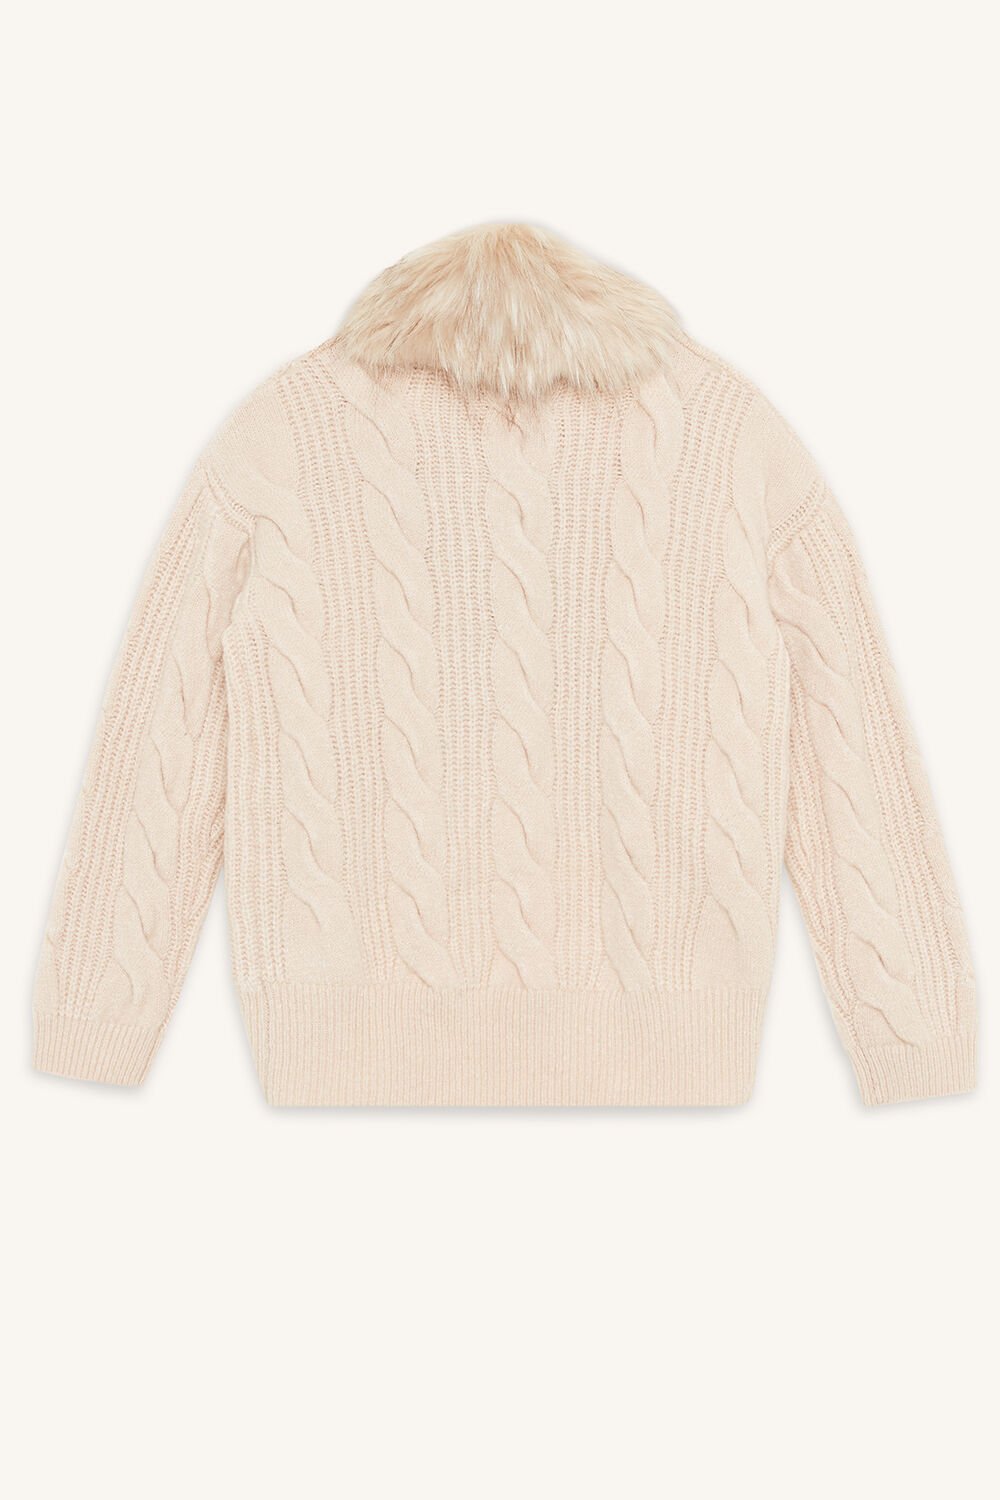 CABLE KNIT CARDIGAN in colour PEACH BLUSH